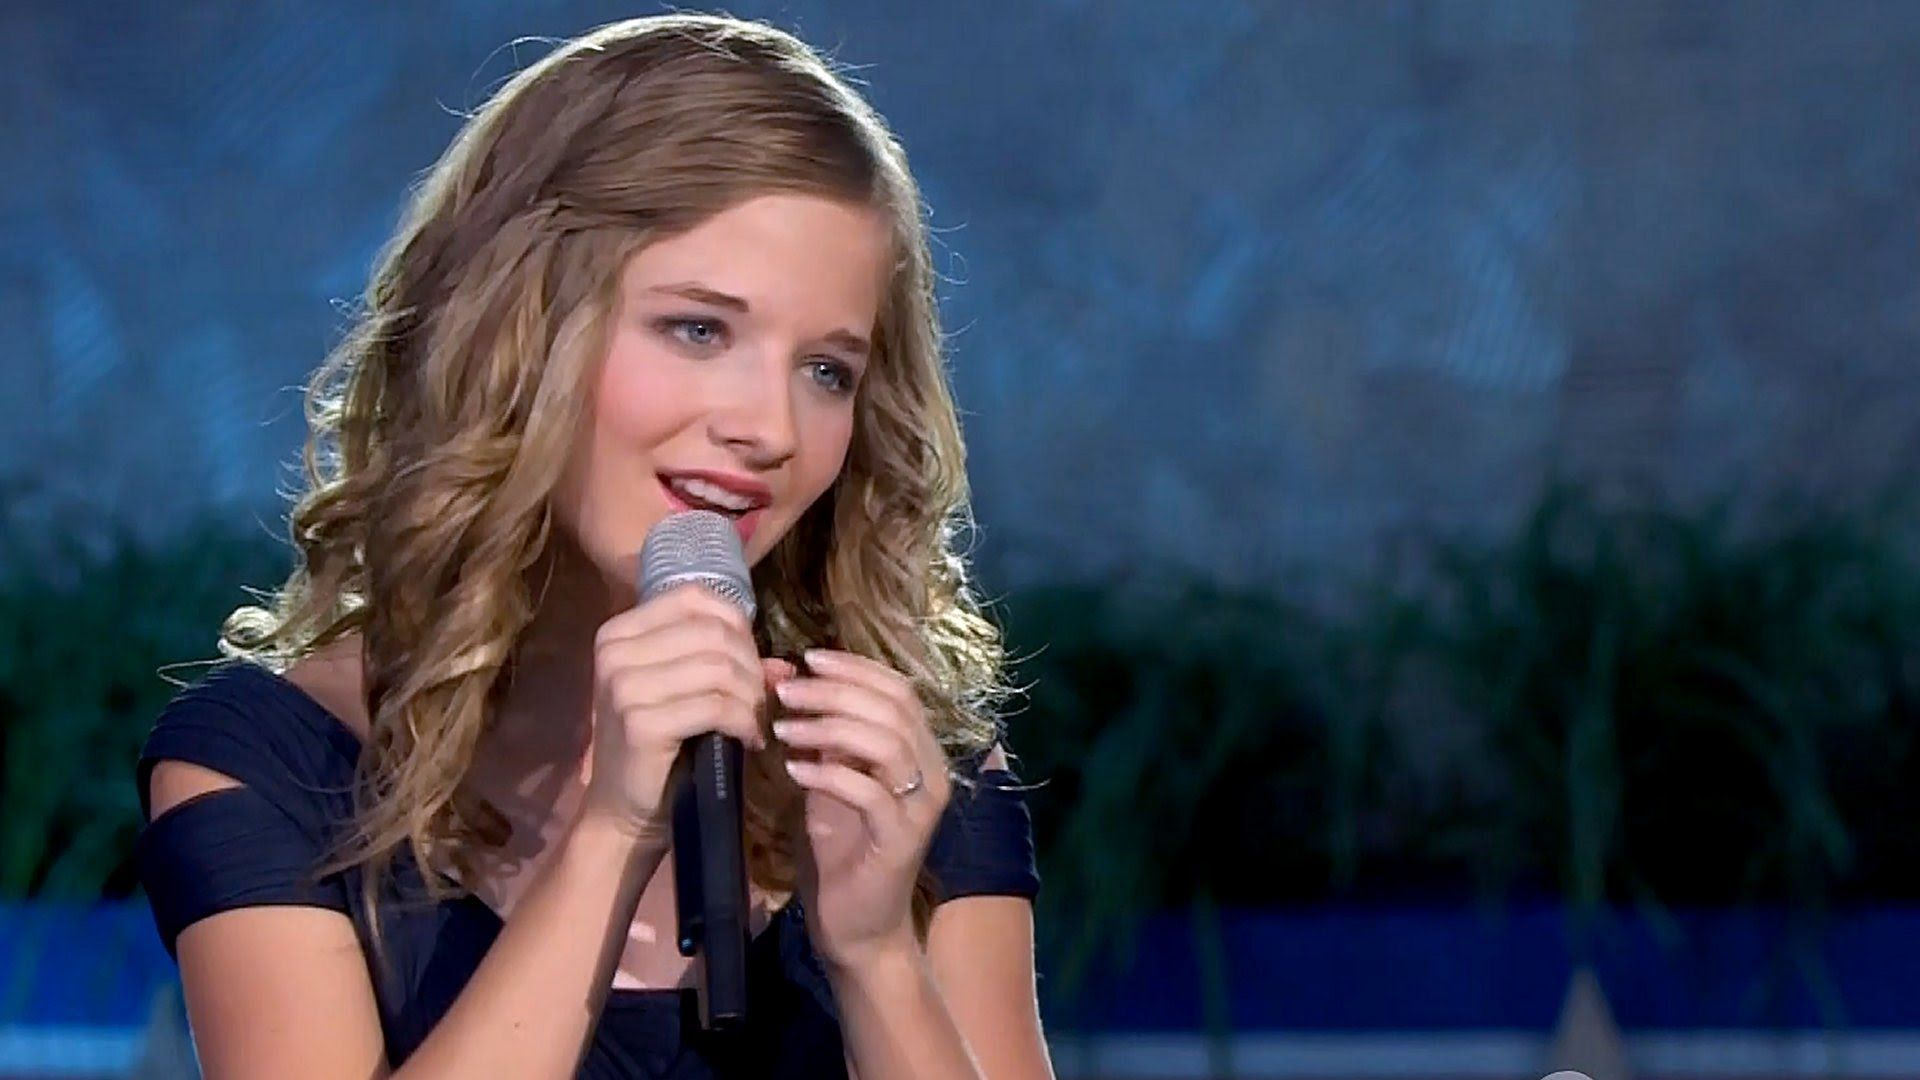 jackie evancho can you feel the love tonight lyricsjackie evancho биография, jackie evancho 2017, jackie evancho mp3, jackie evancho to believe, jackie evancho -, jackie evancho слушать онлайн, jackie evancho all of the stars, jackie evancho think of me, jackie evancho angel, jackie evancho - writing's on the wall, jackie evancho someday at christmas, jackie evancho time to say goodbye, jackie evancho mp3 download, jackie evancho can you feel the love tonight lyrics, jackie evancho itunes, jackie evancho safe and sound mp3, jackie evancho think of me lyrics, jackie evancho apocalypse lyrics, jackie evancho con te partiro, jackie evancho anthem